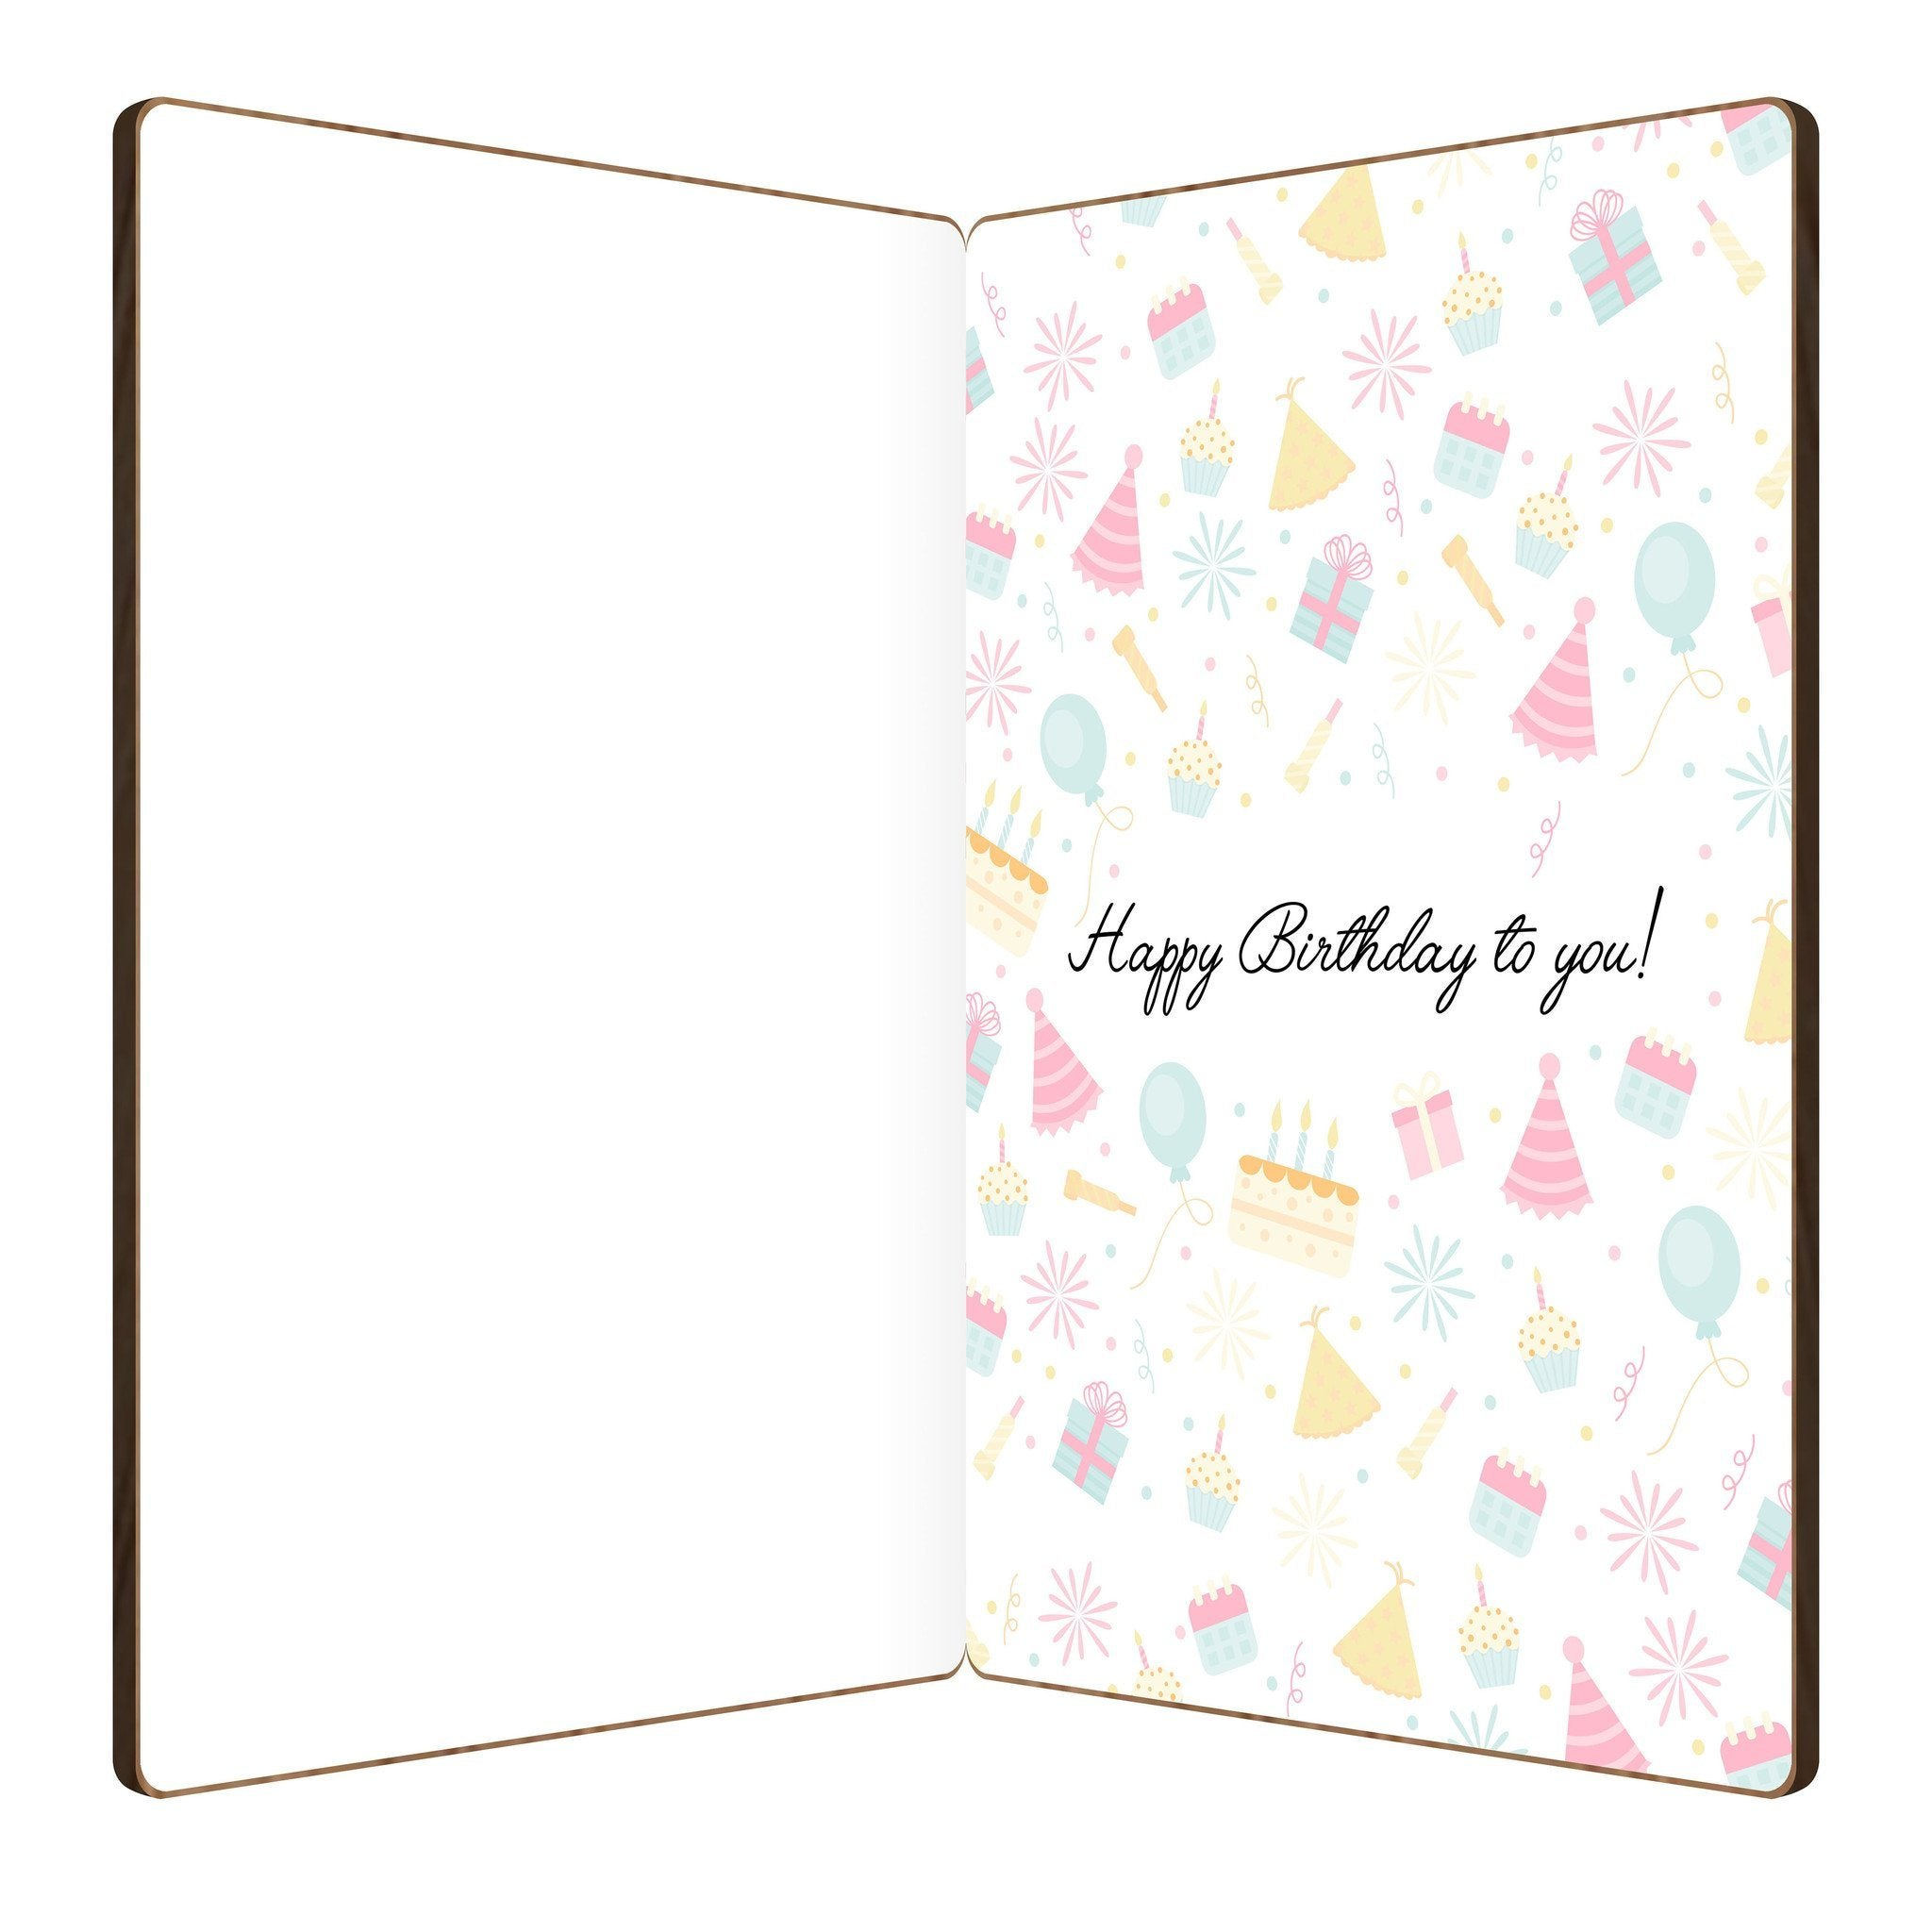 Happy birthday stars bamboo birthday card heartspace cards slightly open bamboo wood greeting card with festive birthday design and message happy birthday card m4hsunfo